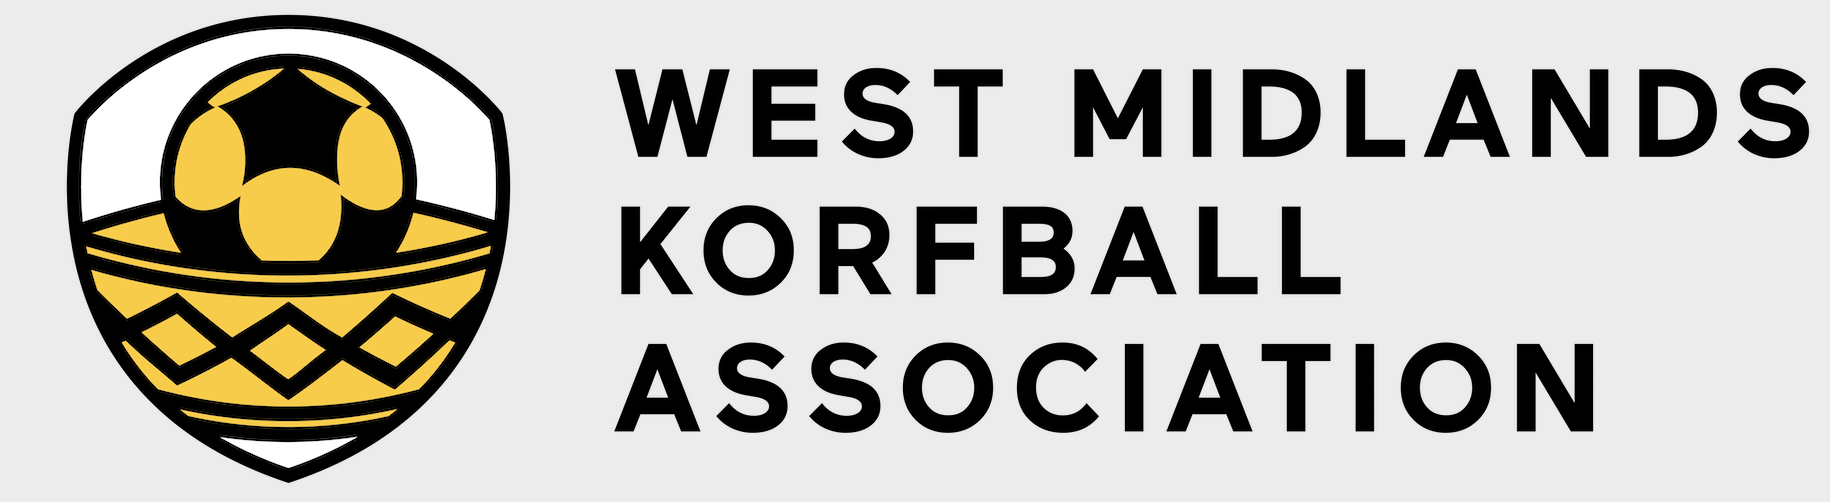 West Midlands Korfball Association